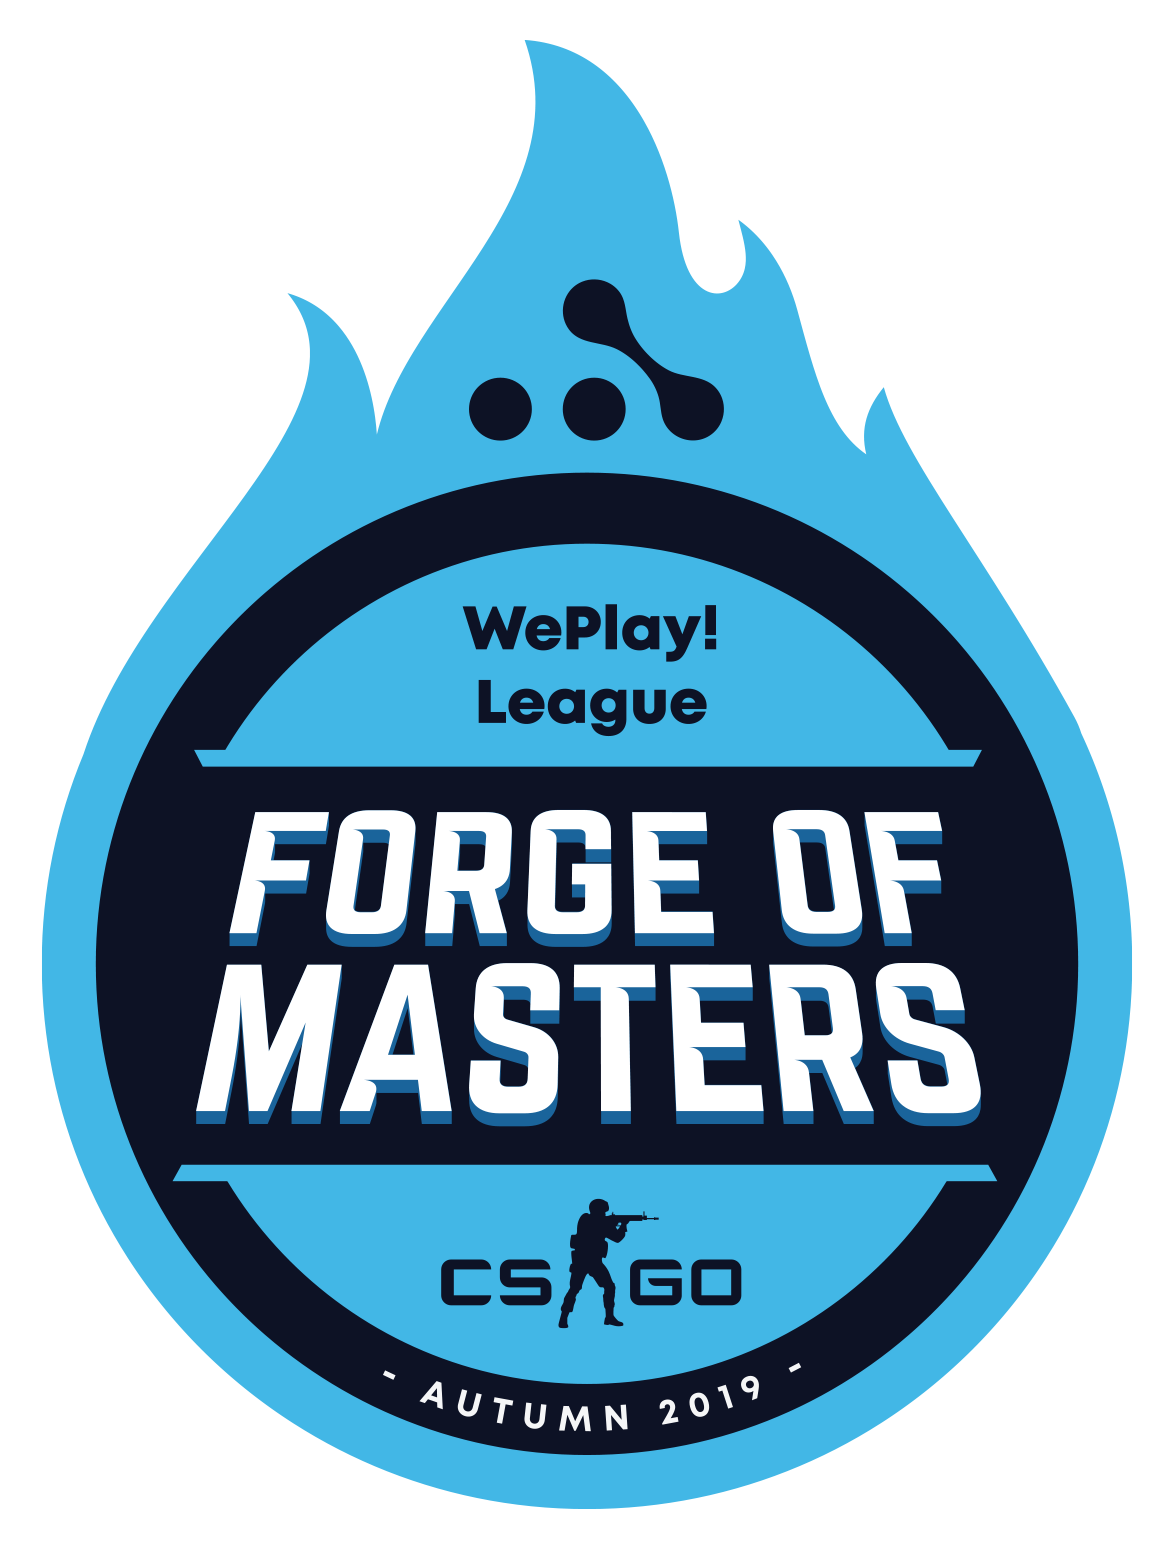 Forge of Masters  CS:GO Tournament